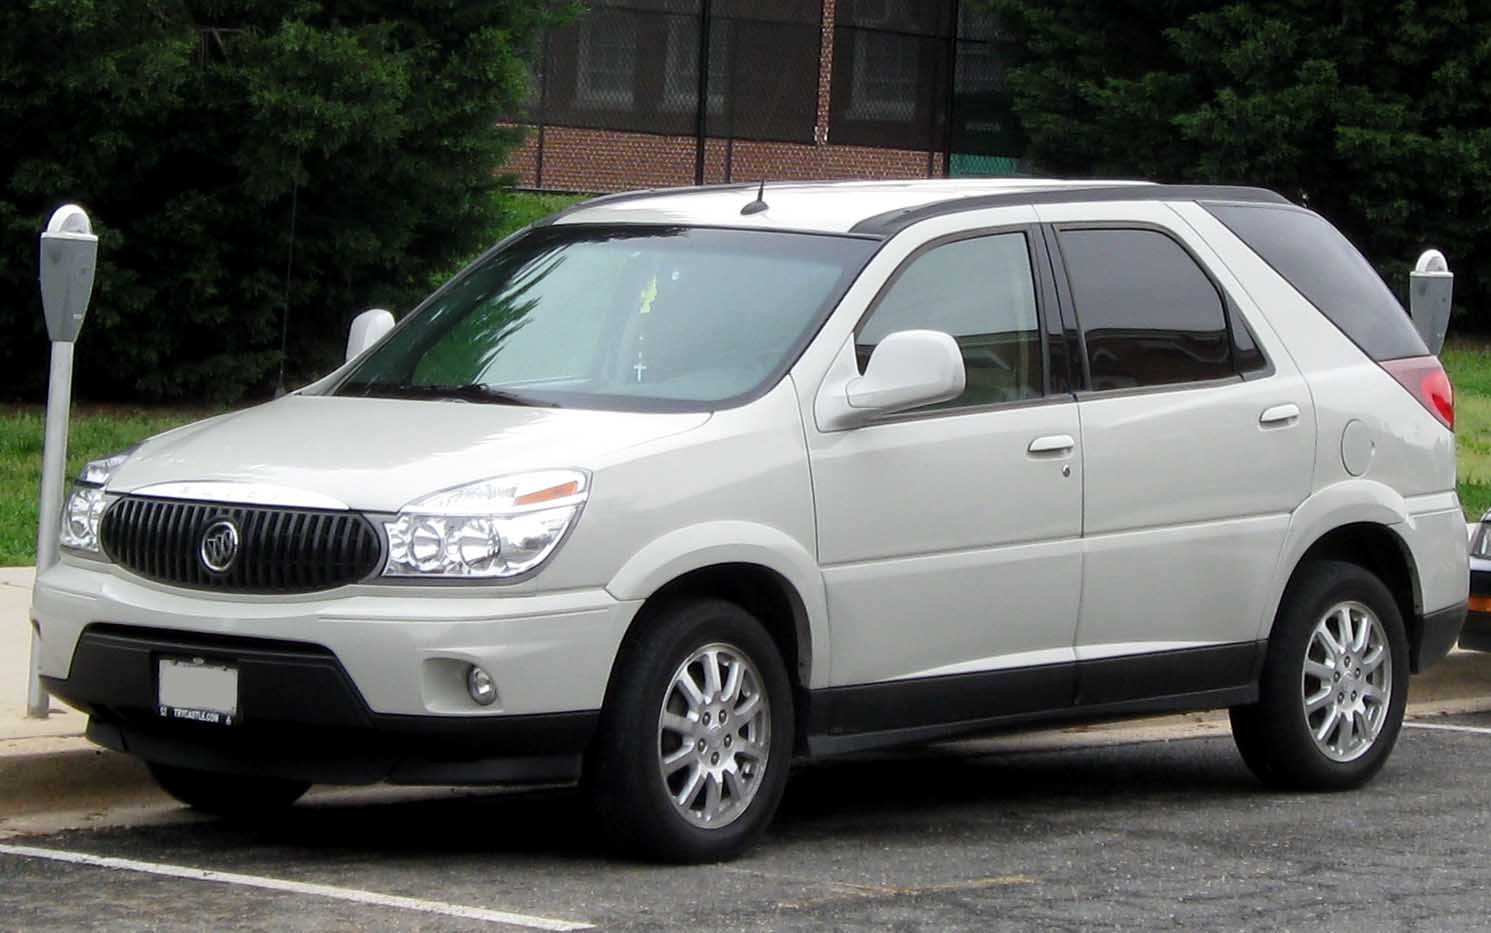 2006 Buick Rendezvous Information And Photos Momentcar